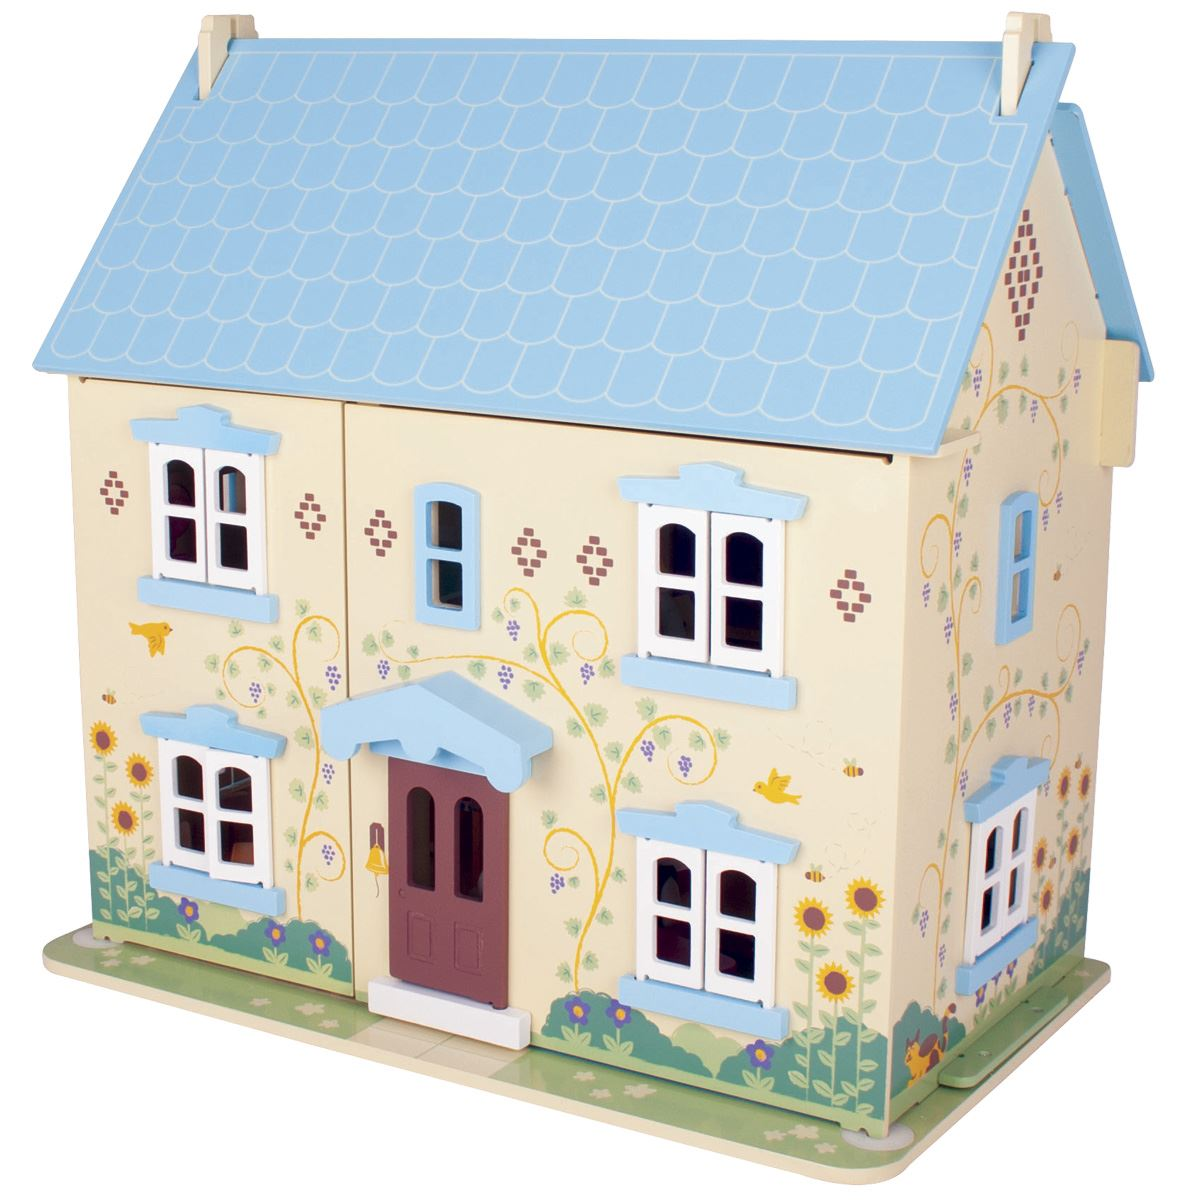 Sunflower Cottage Bigjigs Jt129 Wooden Dolls Houses